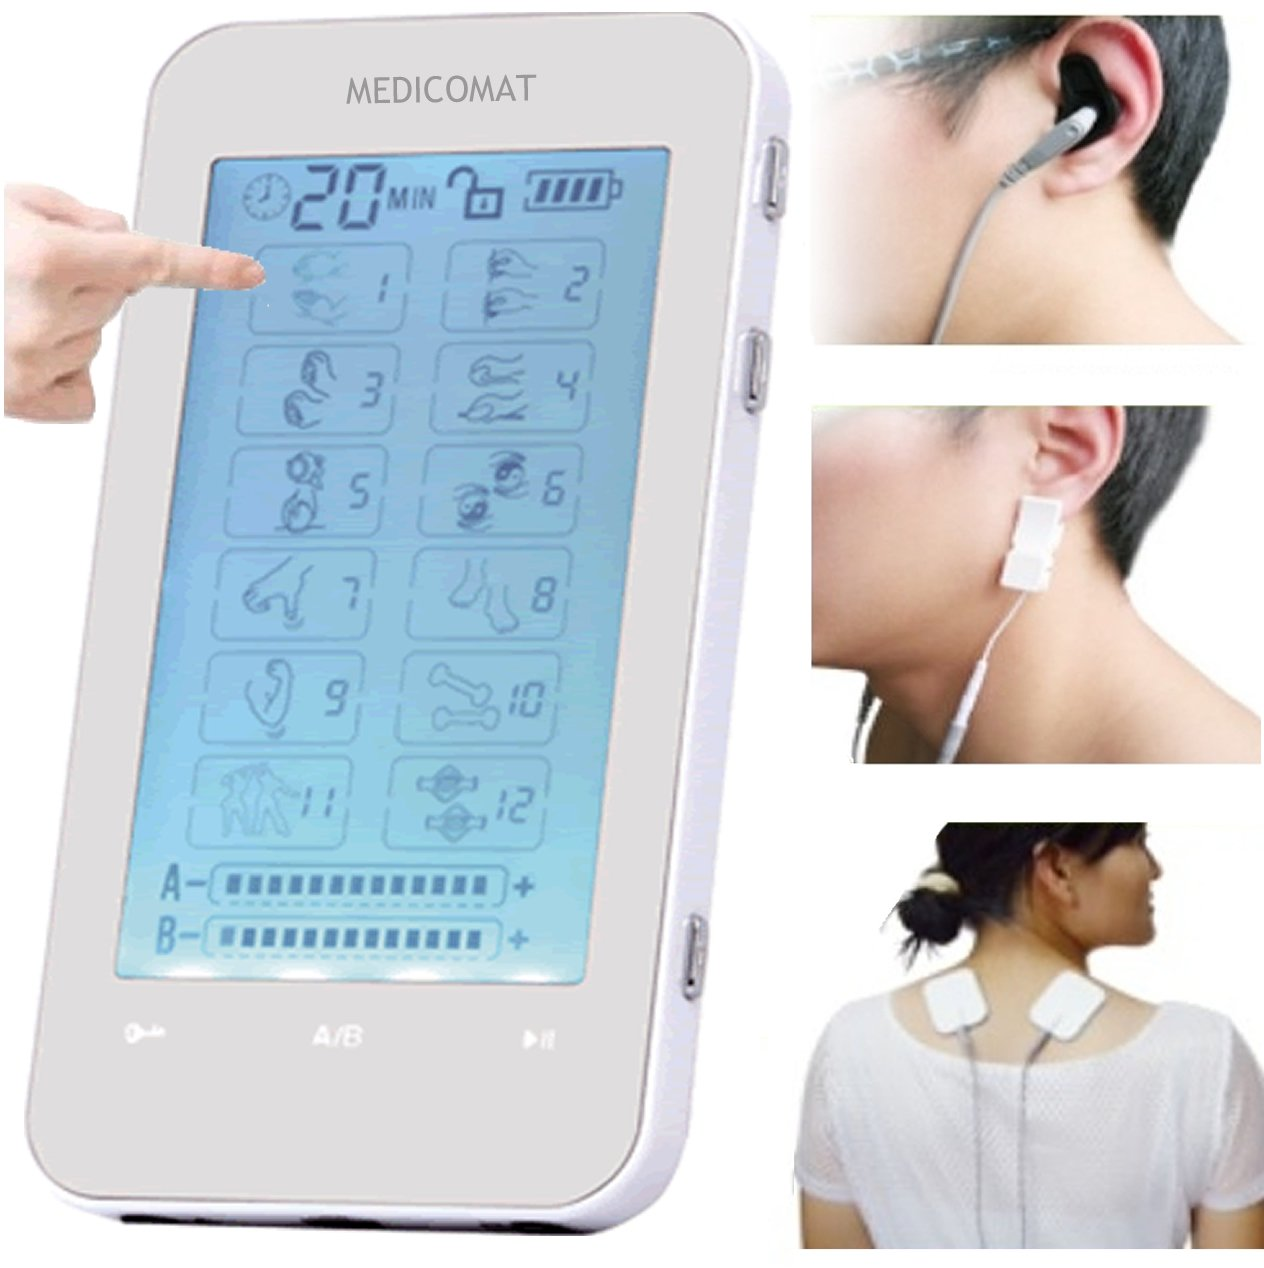 Acupuncture Stress Depression Anxiety Medicomat-3 Acupuncture